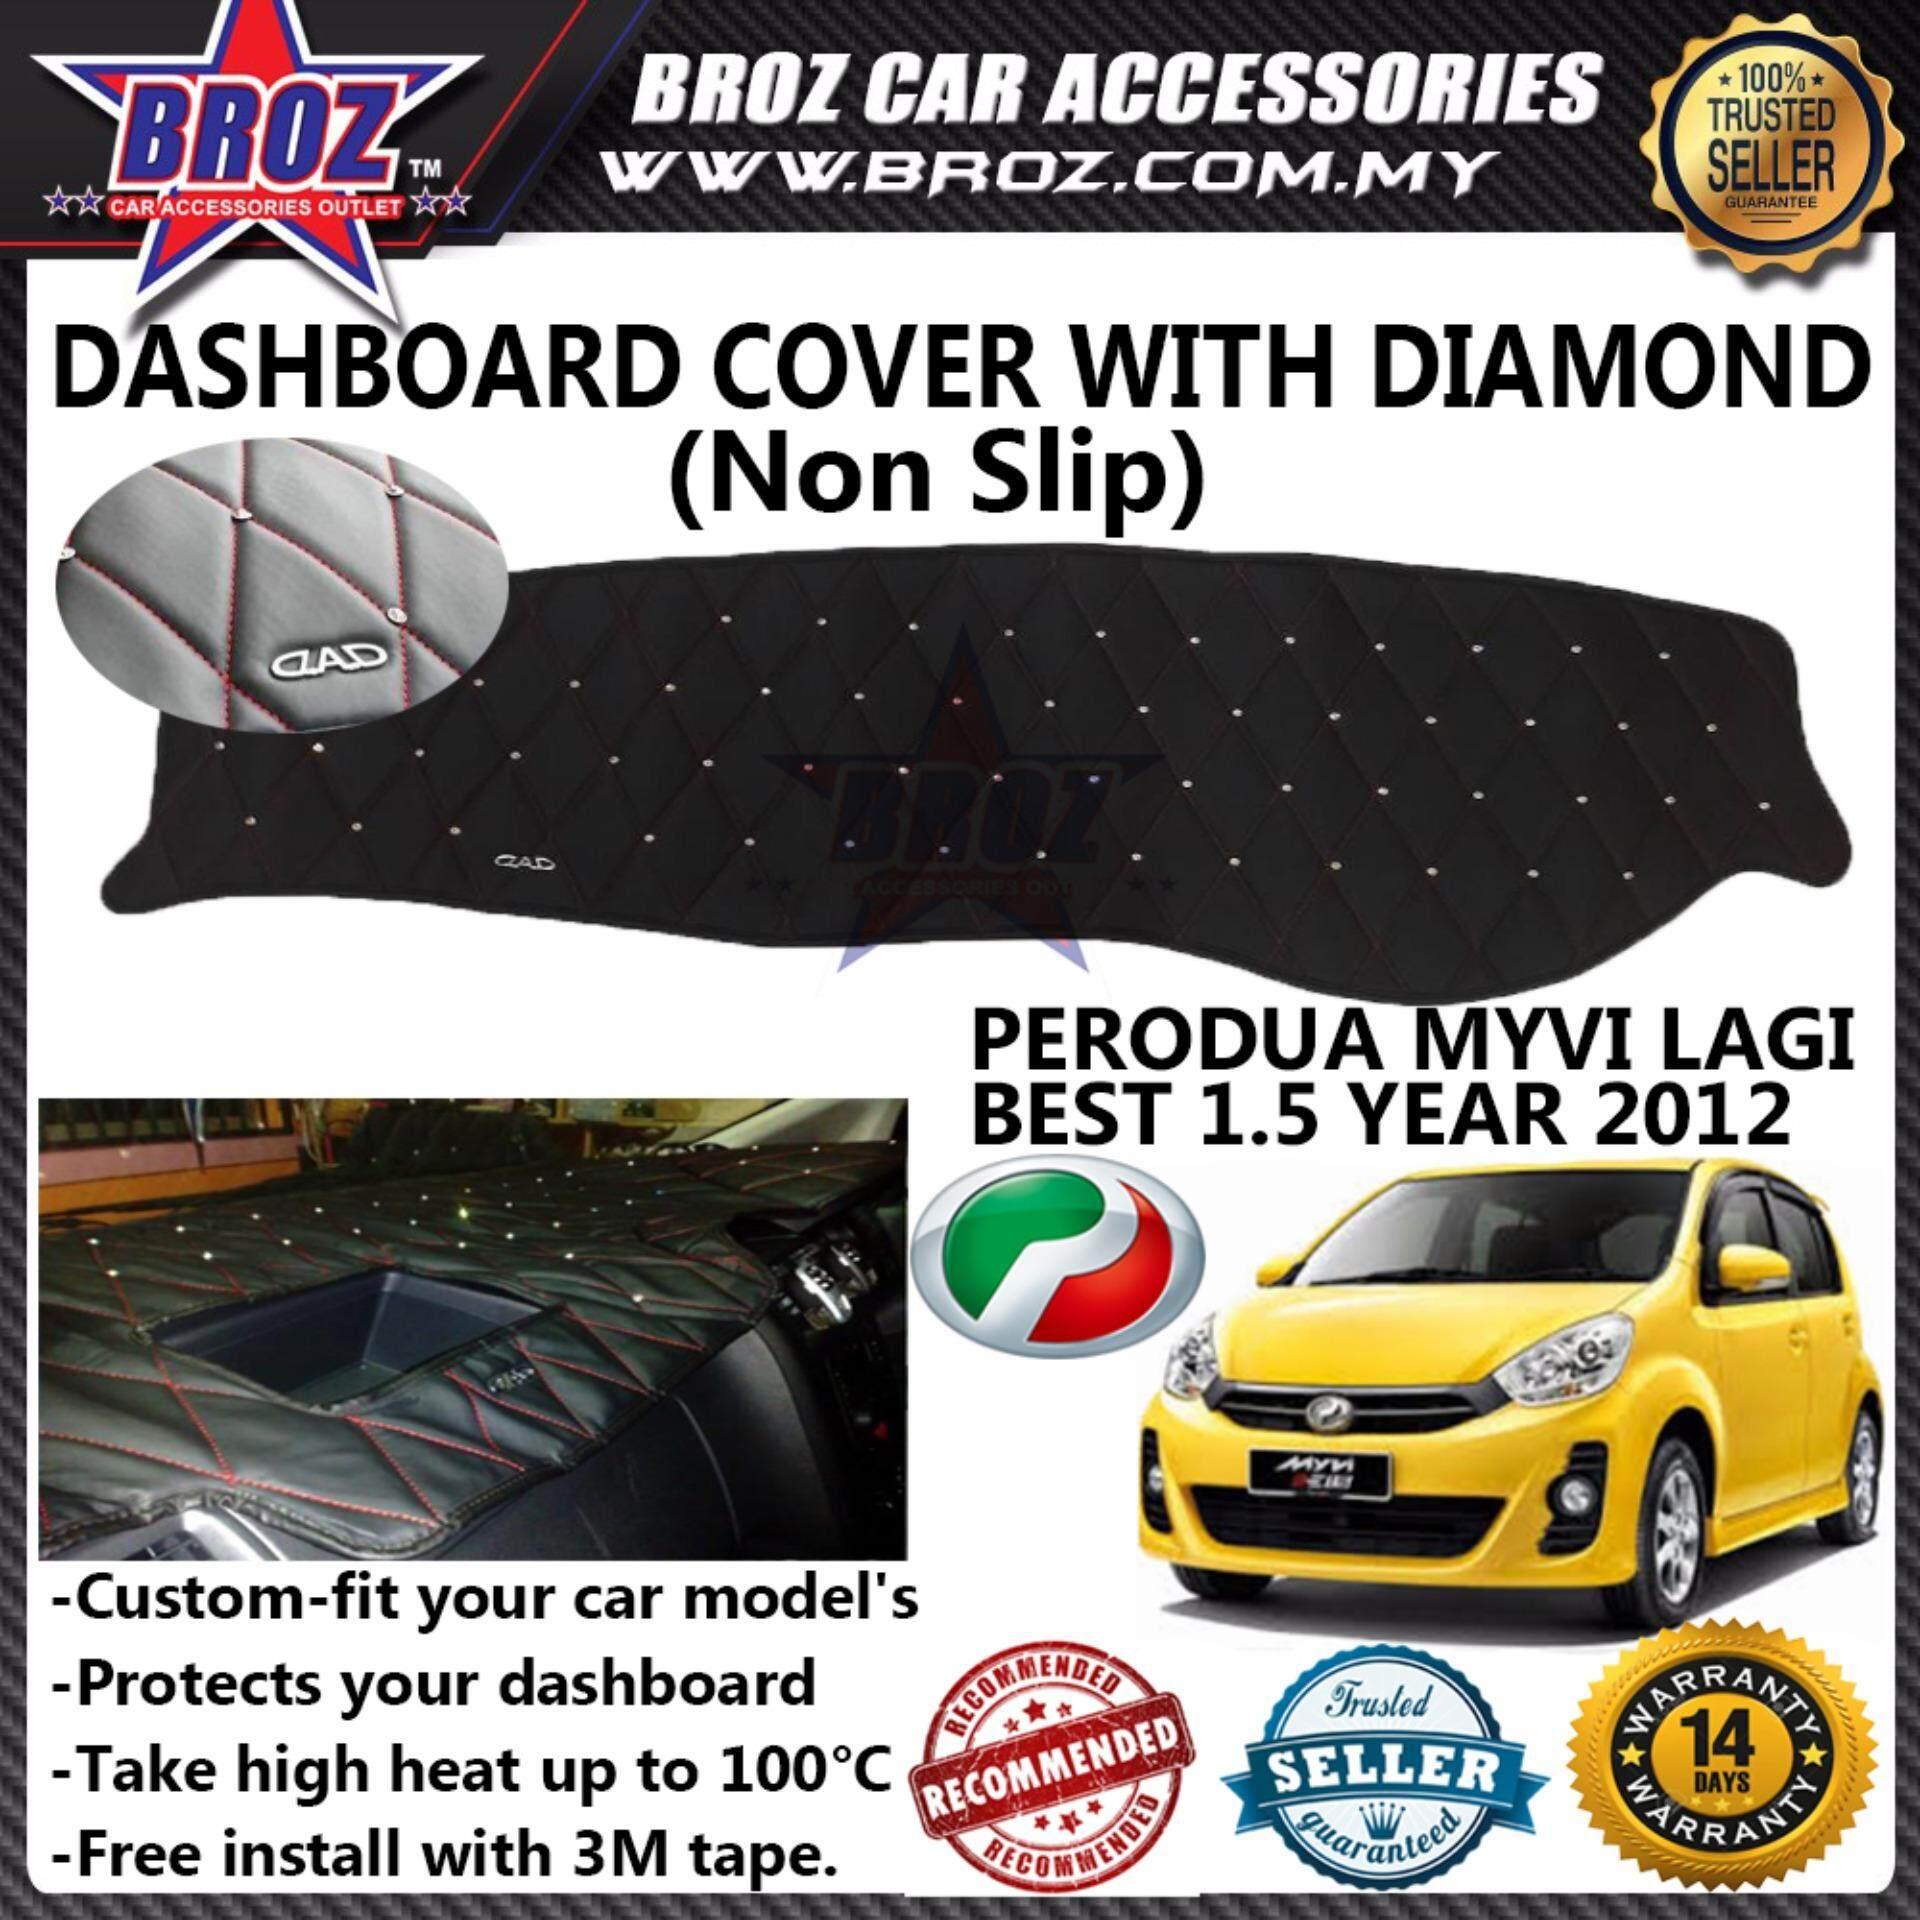 Non Slip Dashboard Cover with diamond for Perodua Myvi Lagi Best 1.5 Year 2012